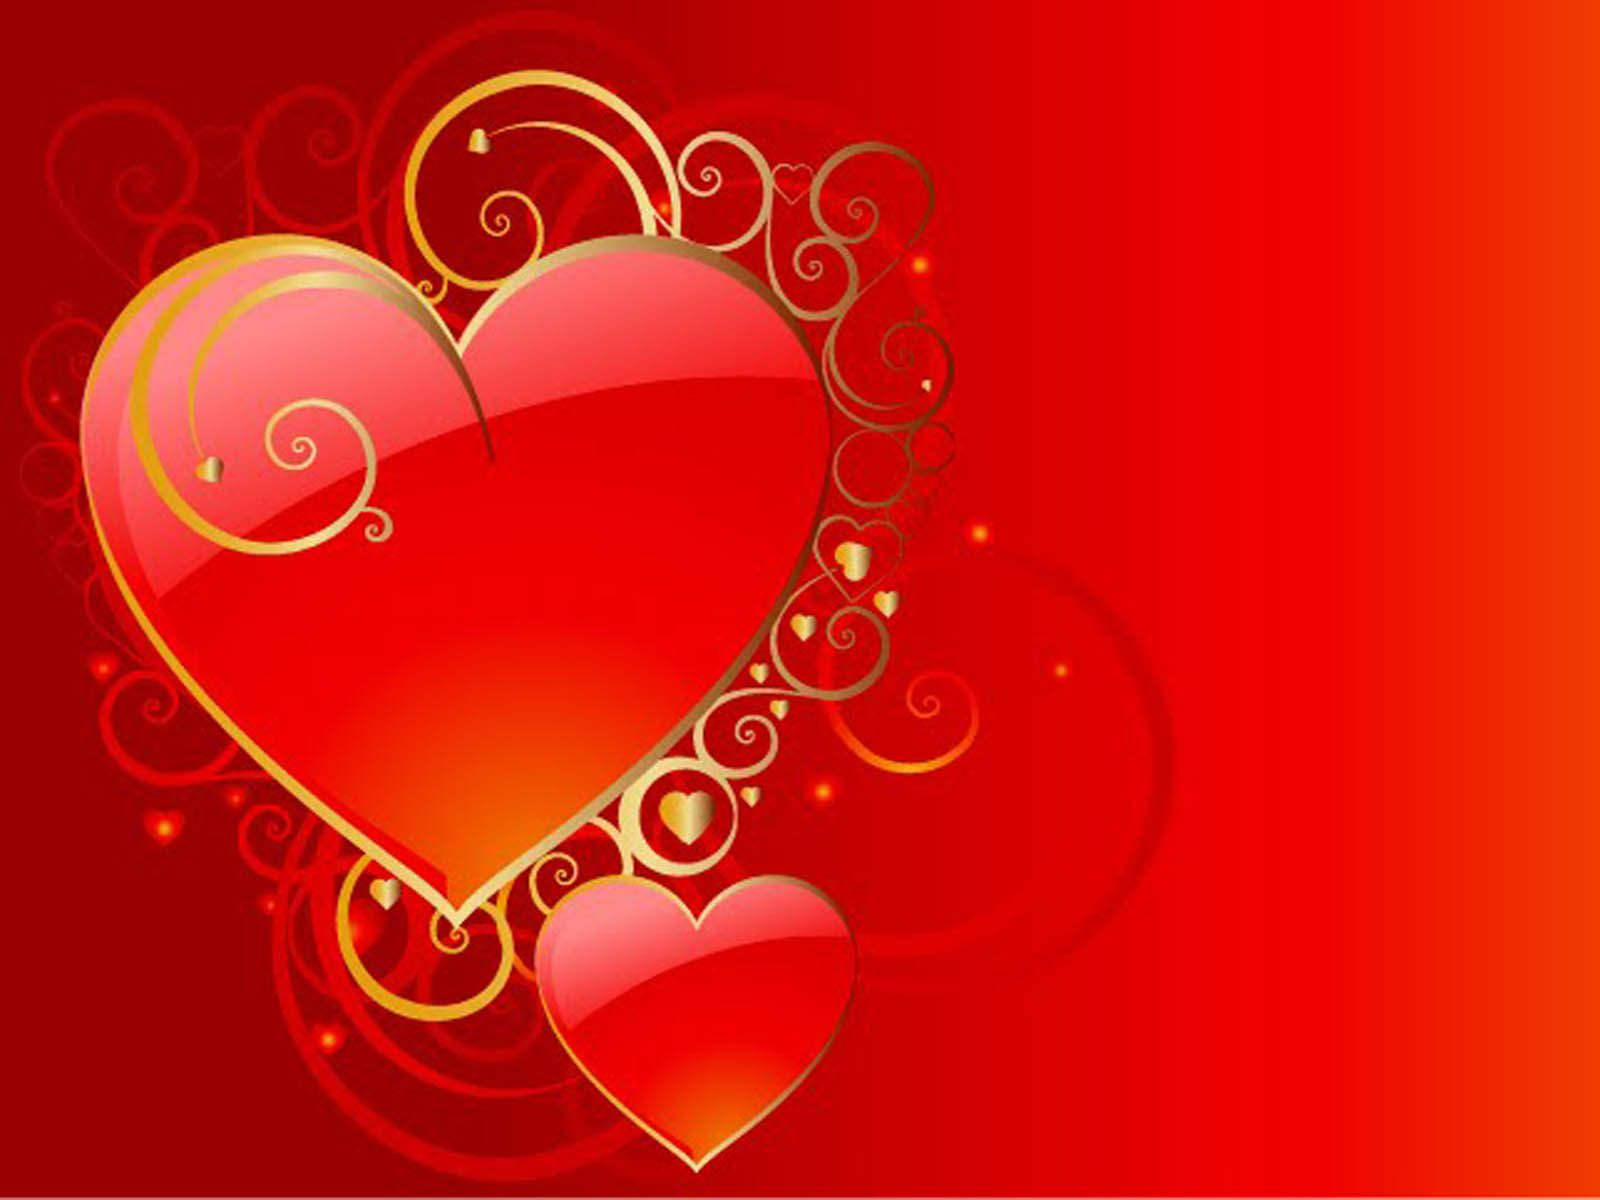 download wallpapers of hearts Collection (77 )